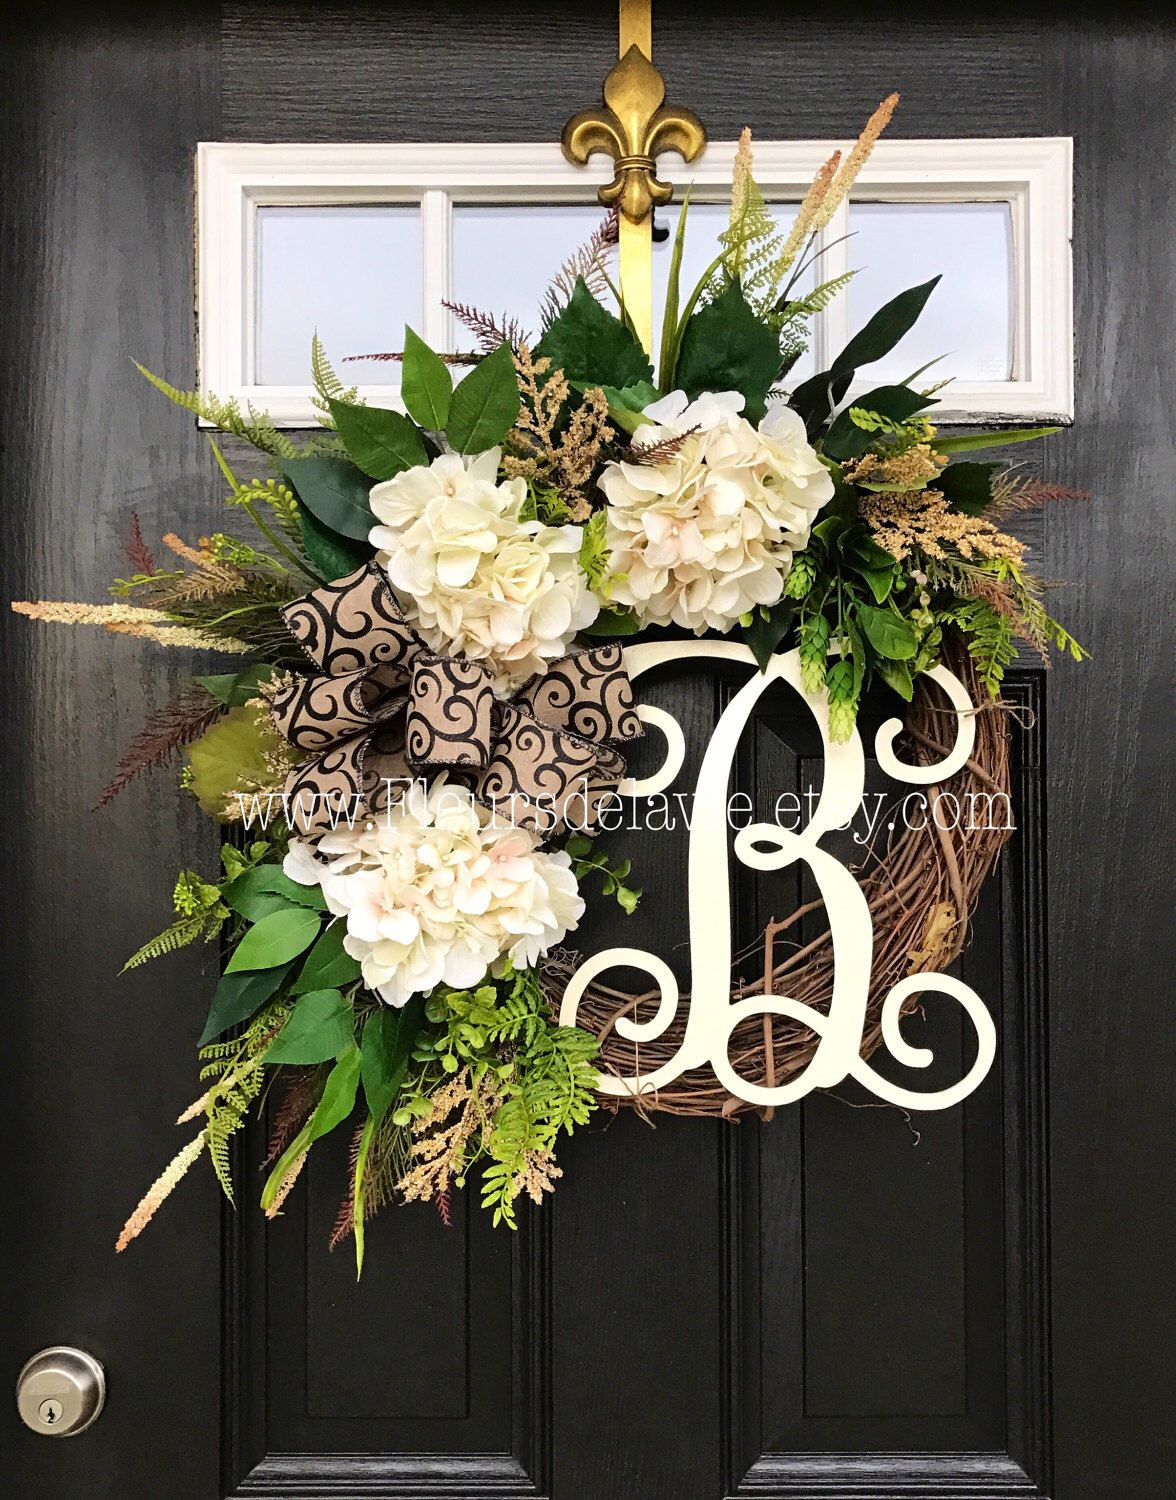 Wreaths for Front Door Front Door Wreaths Fall Door Wreaths & BEST SELLER! Wreaths for Front Door Front Door Wreaths Fall Door ... pezcame.com